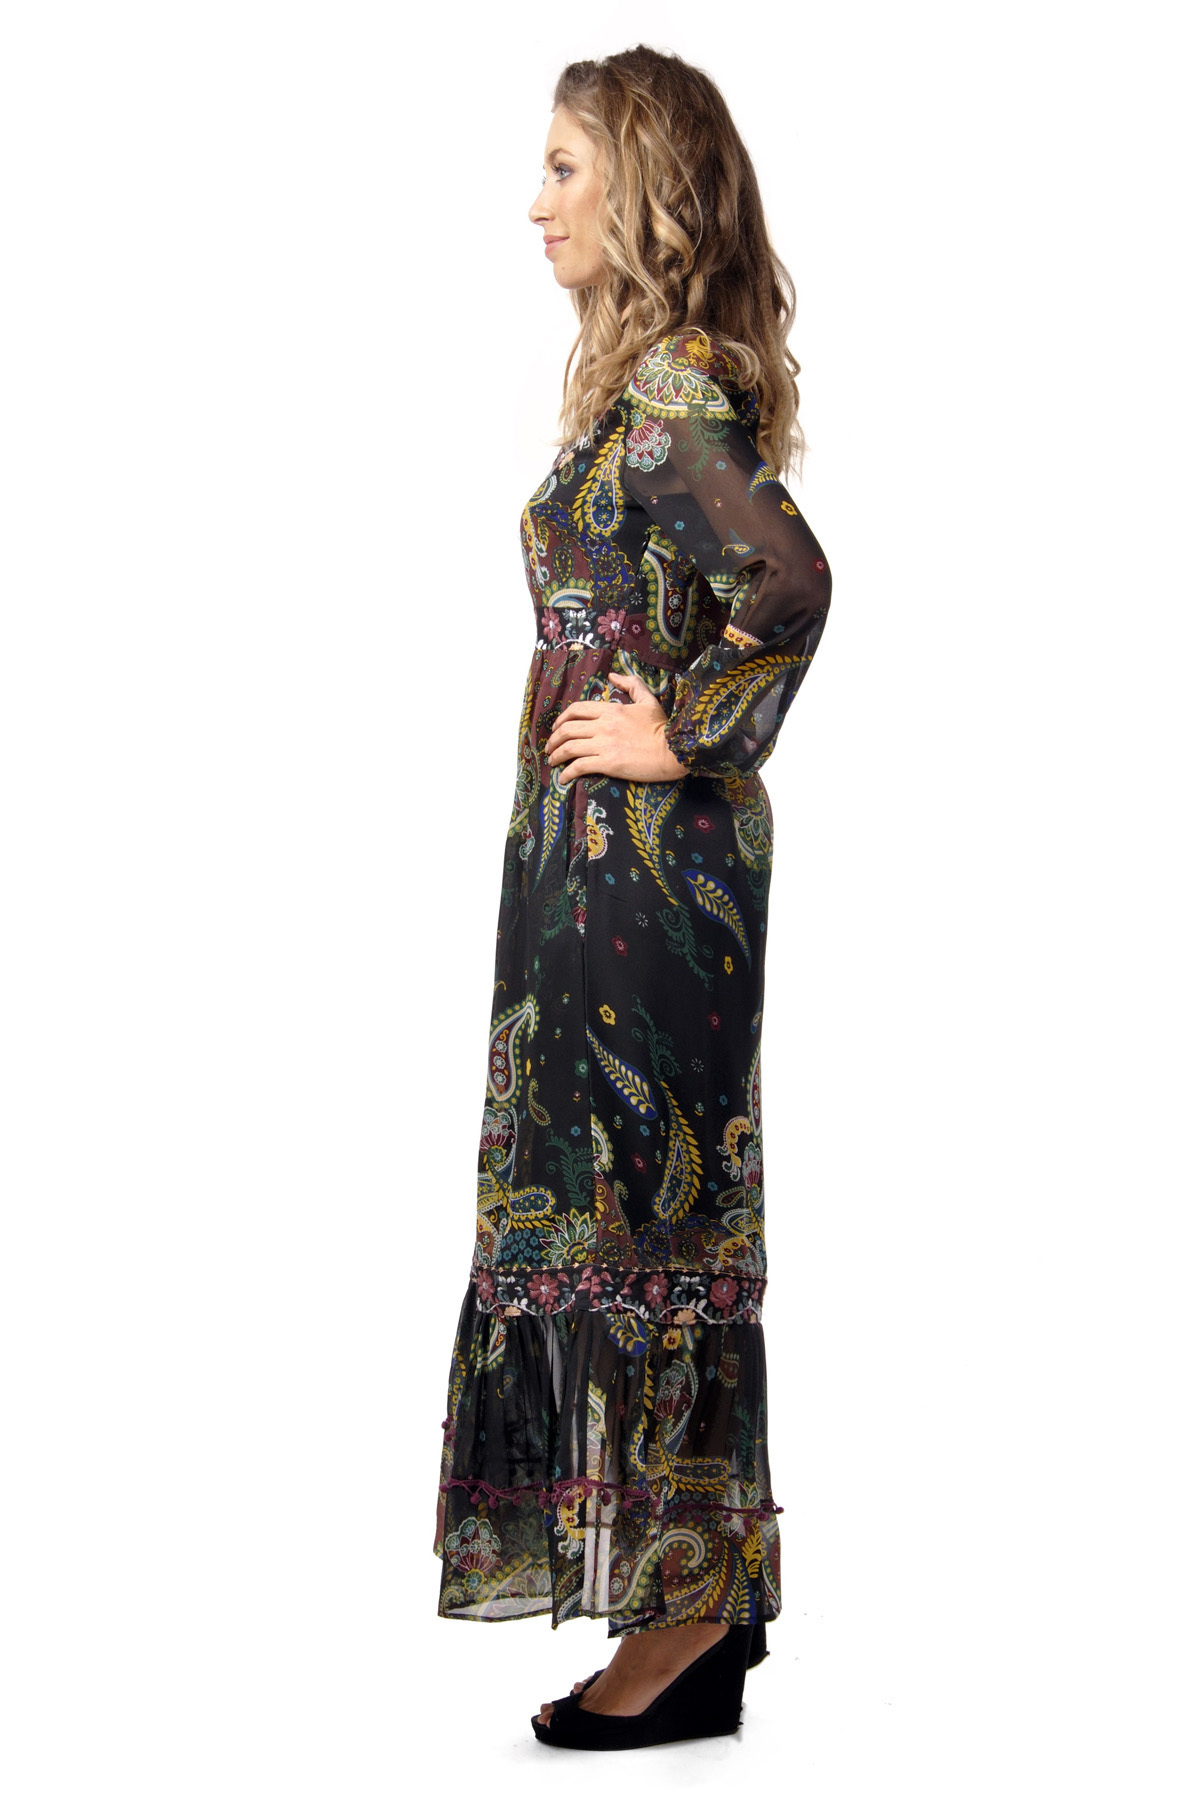 Savage Culture: Lounge In Love Maxi Dress Alicia (2 Left!)